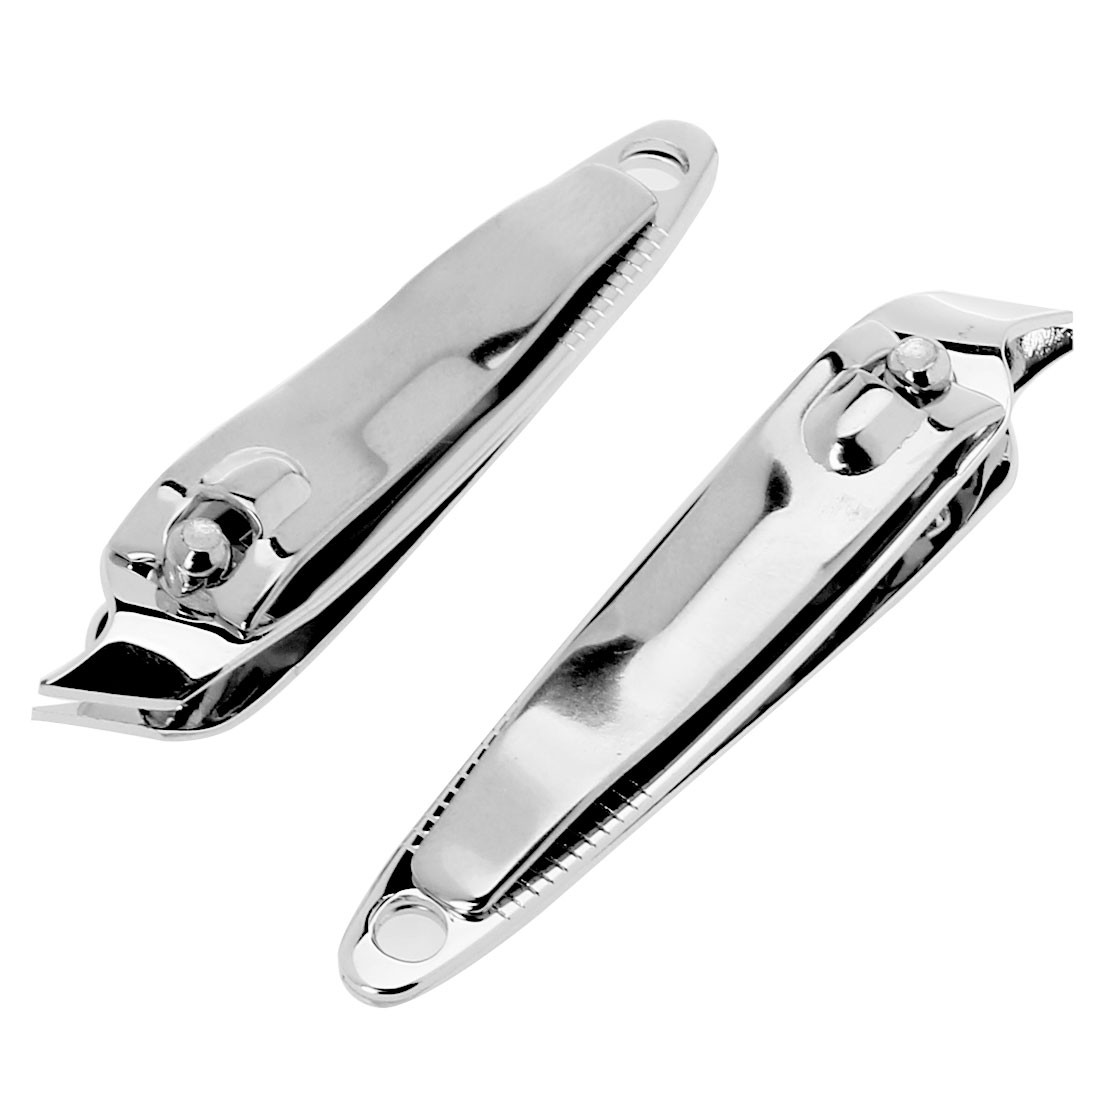 2 Pcs Silver Tone Salon Metal Side Slanted Clipper Cutter Cuticle Trimmer